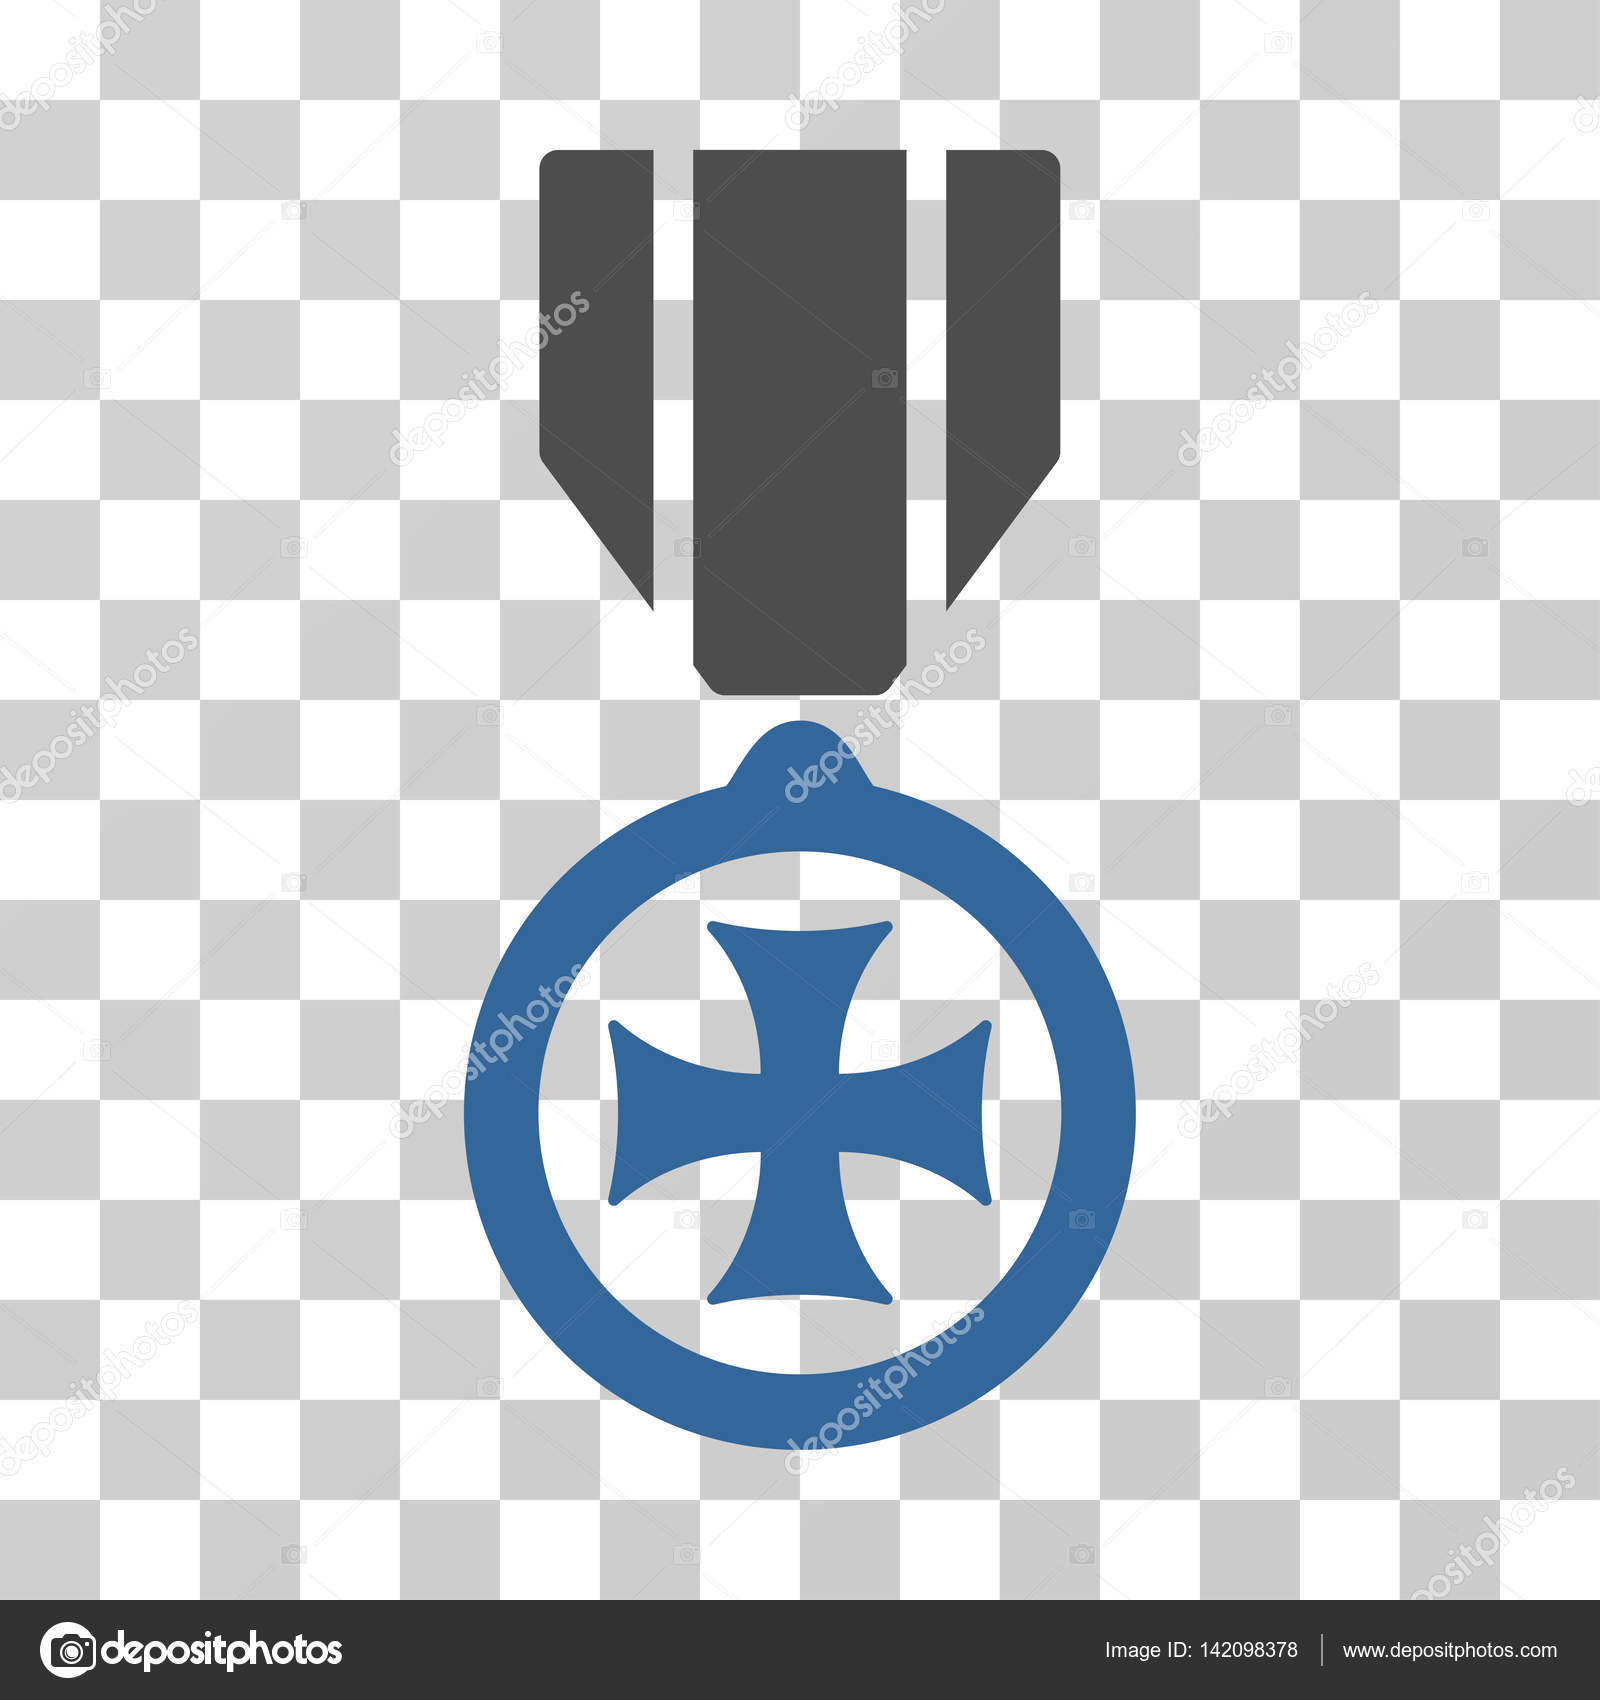 Maltese cross vector icon stock vector ahasoft 142098378 maltese cross icon vector illustration style is flat iconic bicolor symbol cobalt and gray colors transparent background designed for web and software biocorpaavc